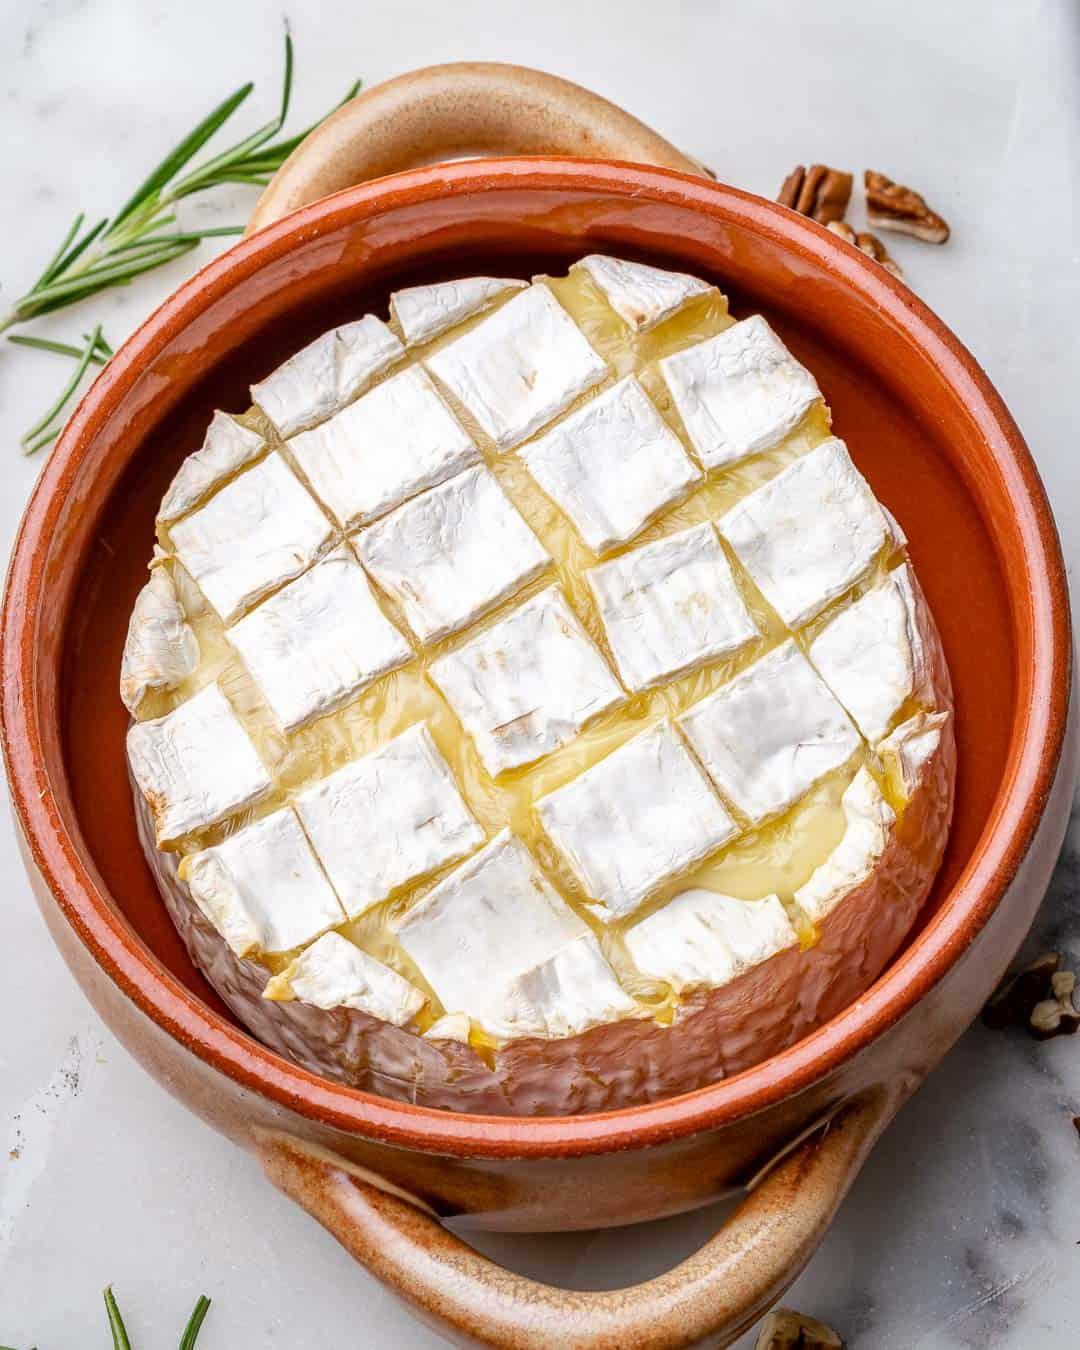 Brie cheese in baking dish after baking